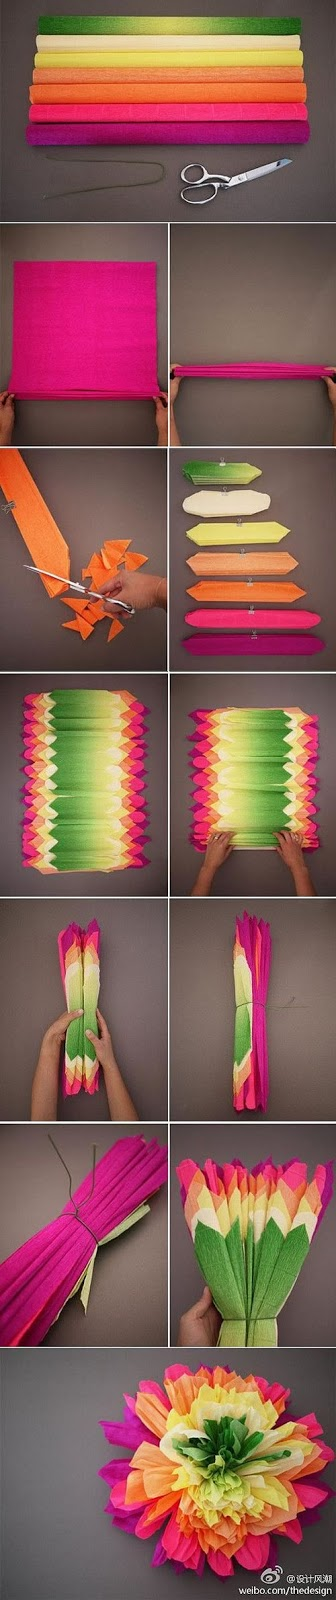 DIY: flores de papel de seda multicolor